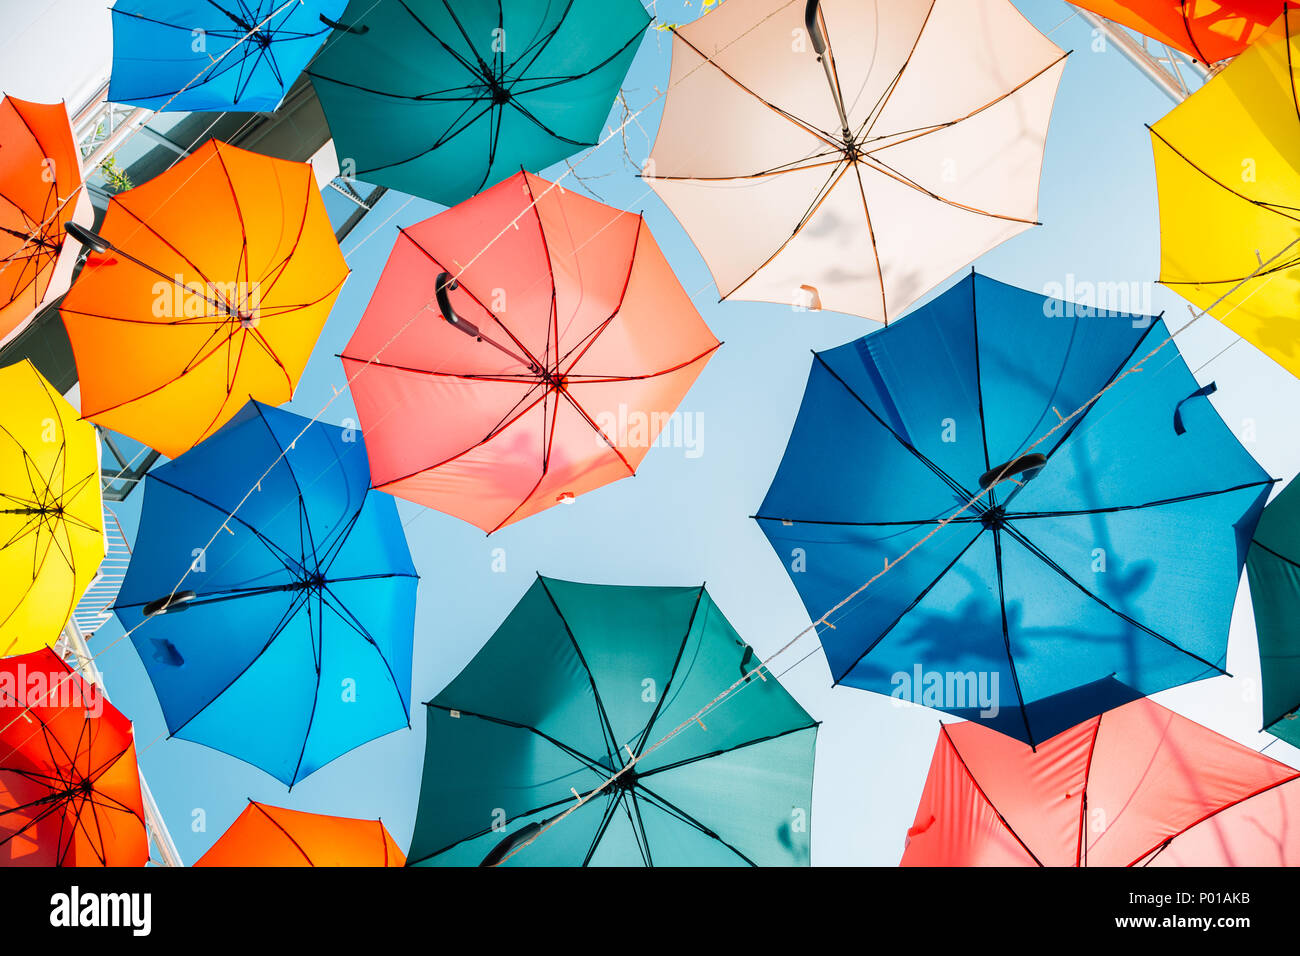 Colorful umbrella background in Taichung, Taiwan Stock Photo